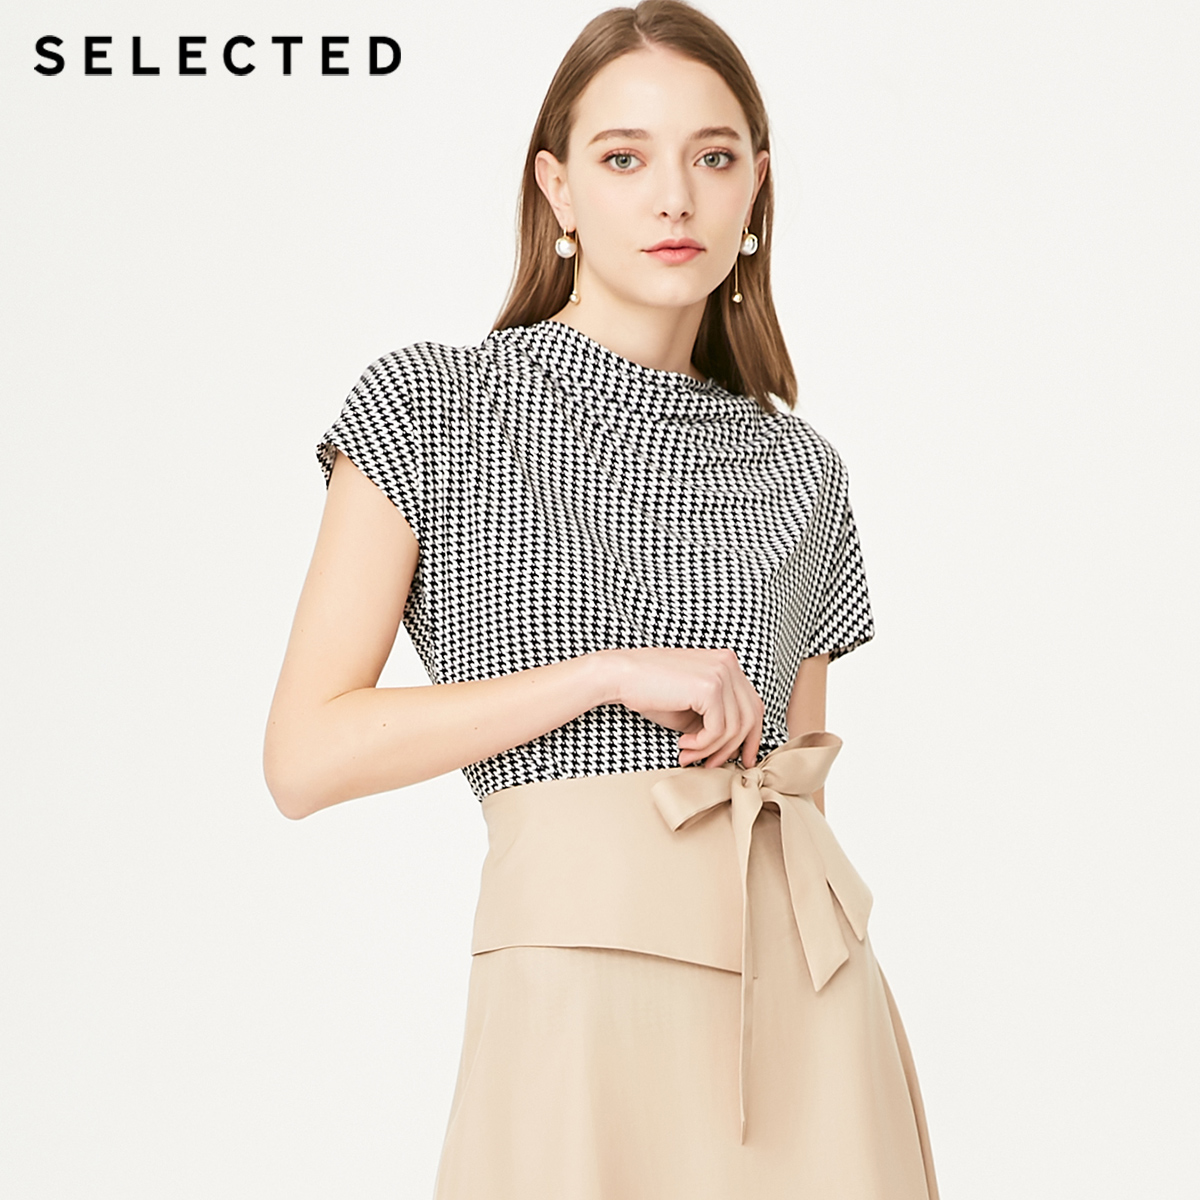 SELECTED Women's Stretch Houndstooth Pattern Short-sleeved T-shirt S|419201529